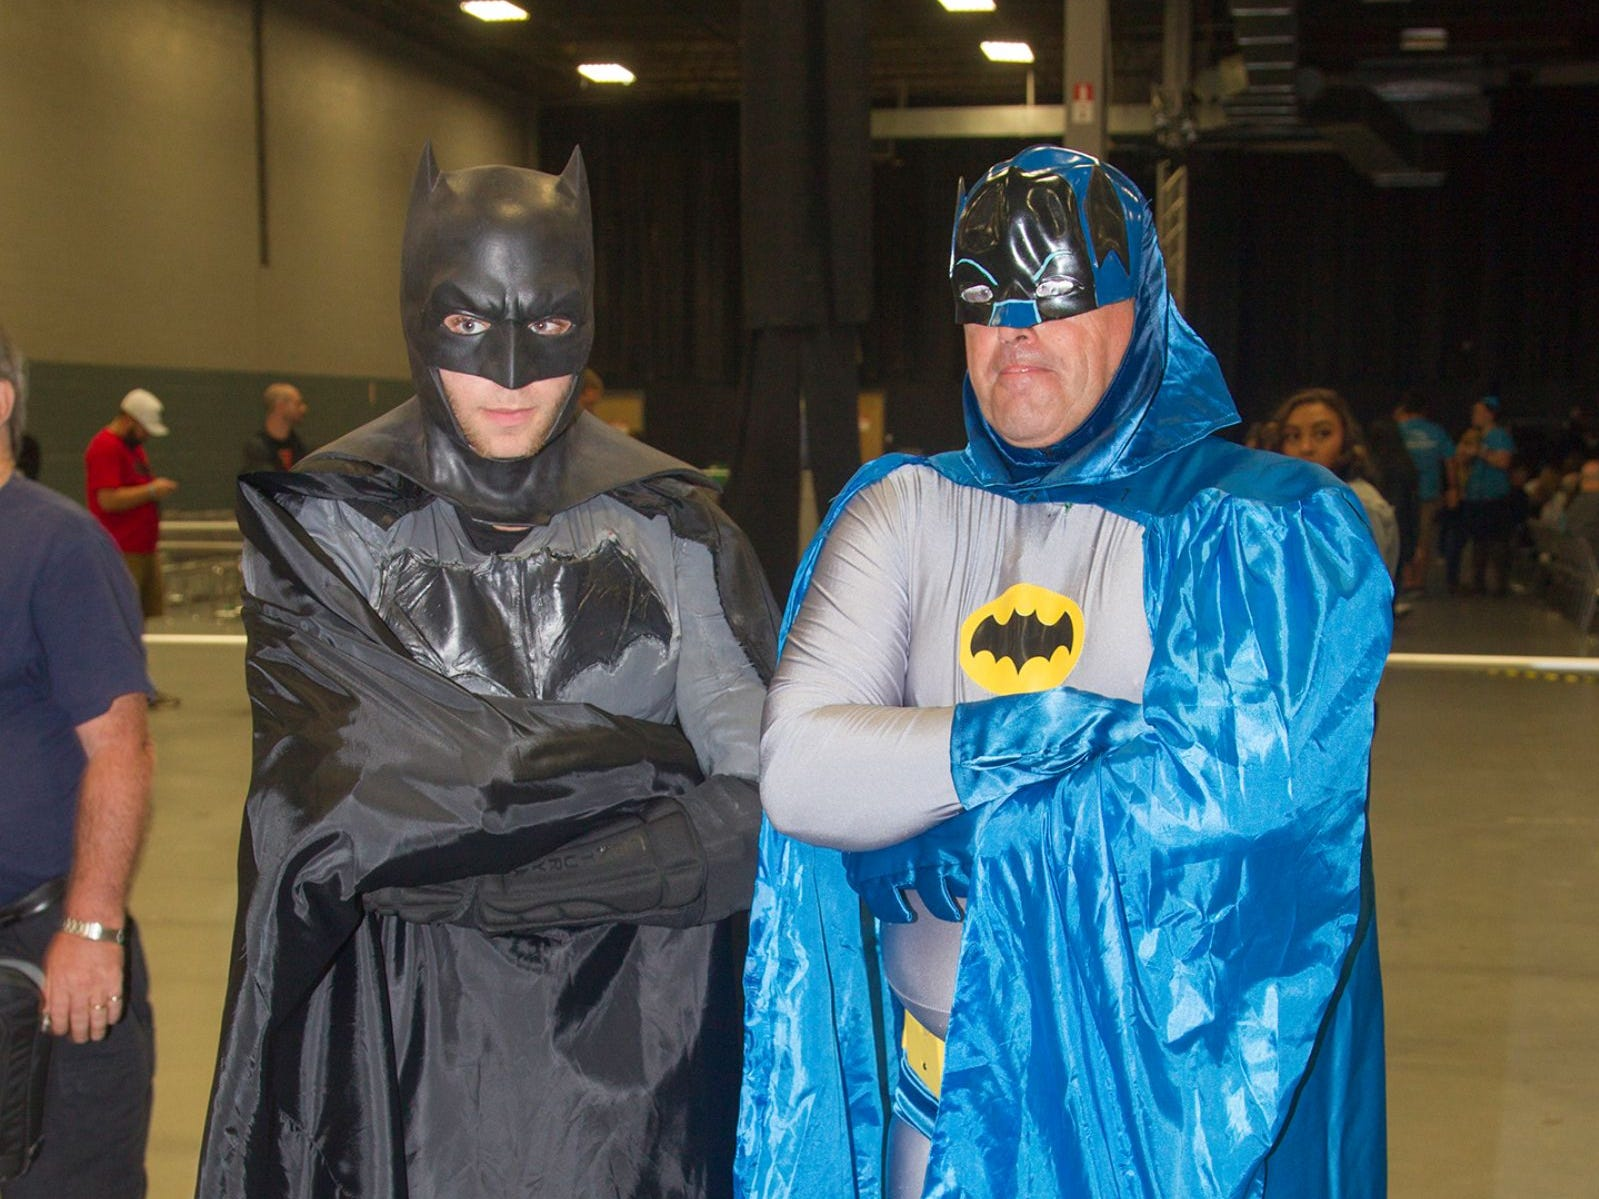 Scott and Jim as Batman. The 2018 Heroes and Villains Fan Fest took place at the New Jersey Convention & Expo Center. 09/09/2018